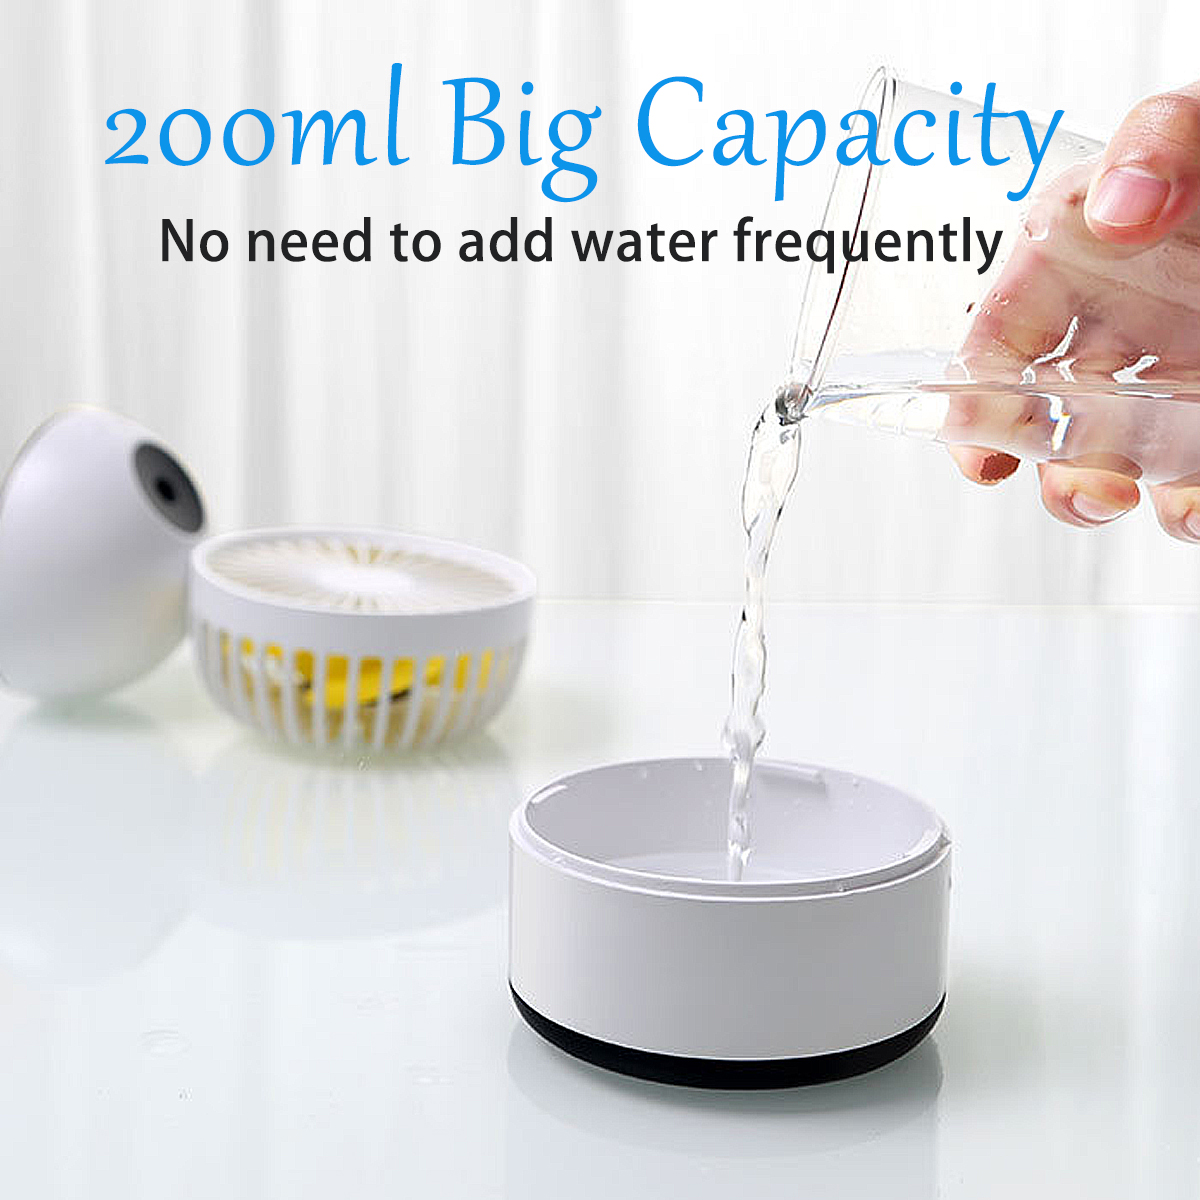 8W 5V Outdoor Portable Mini Air Conditioner Cooler Summer Artic Cooling Fan Spraying Humidifier